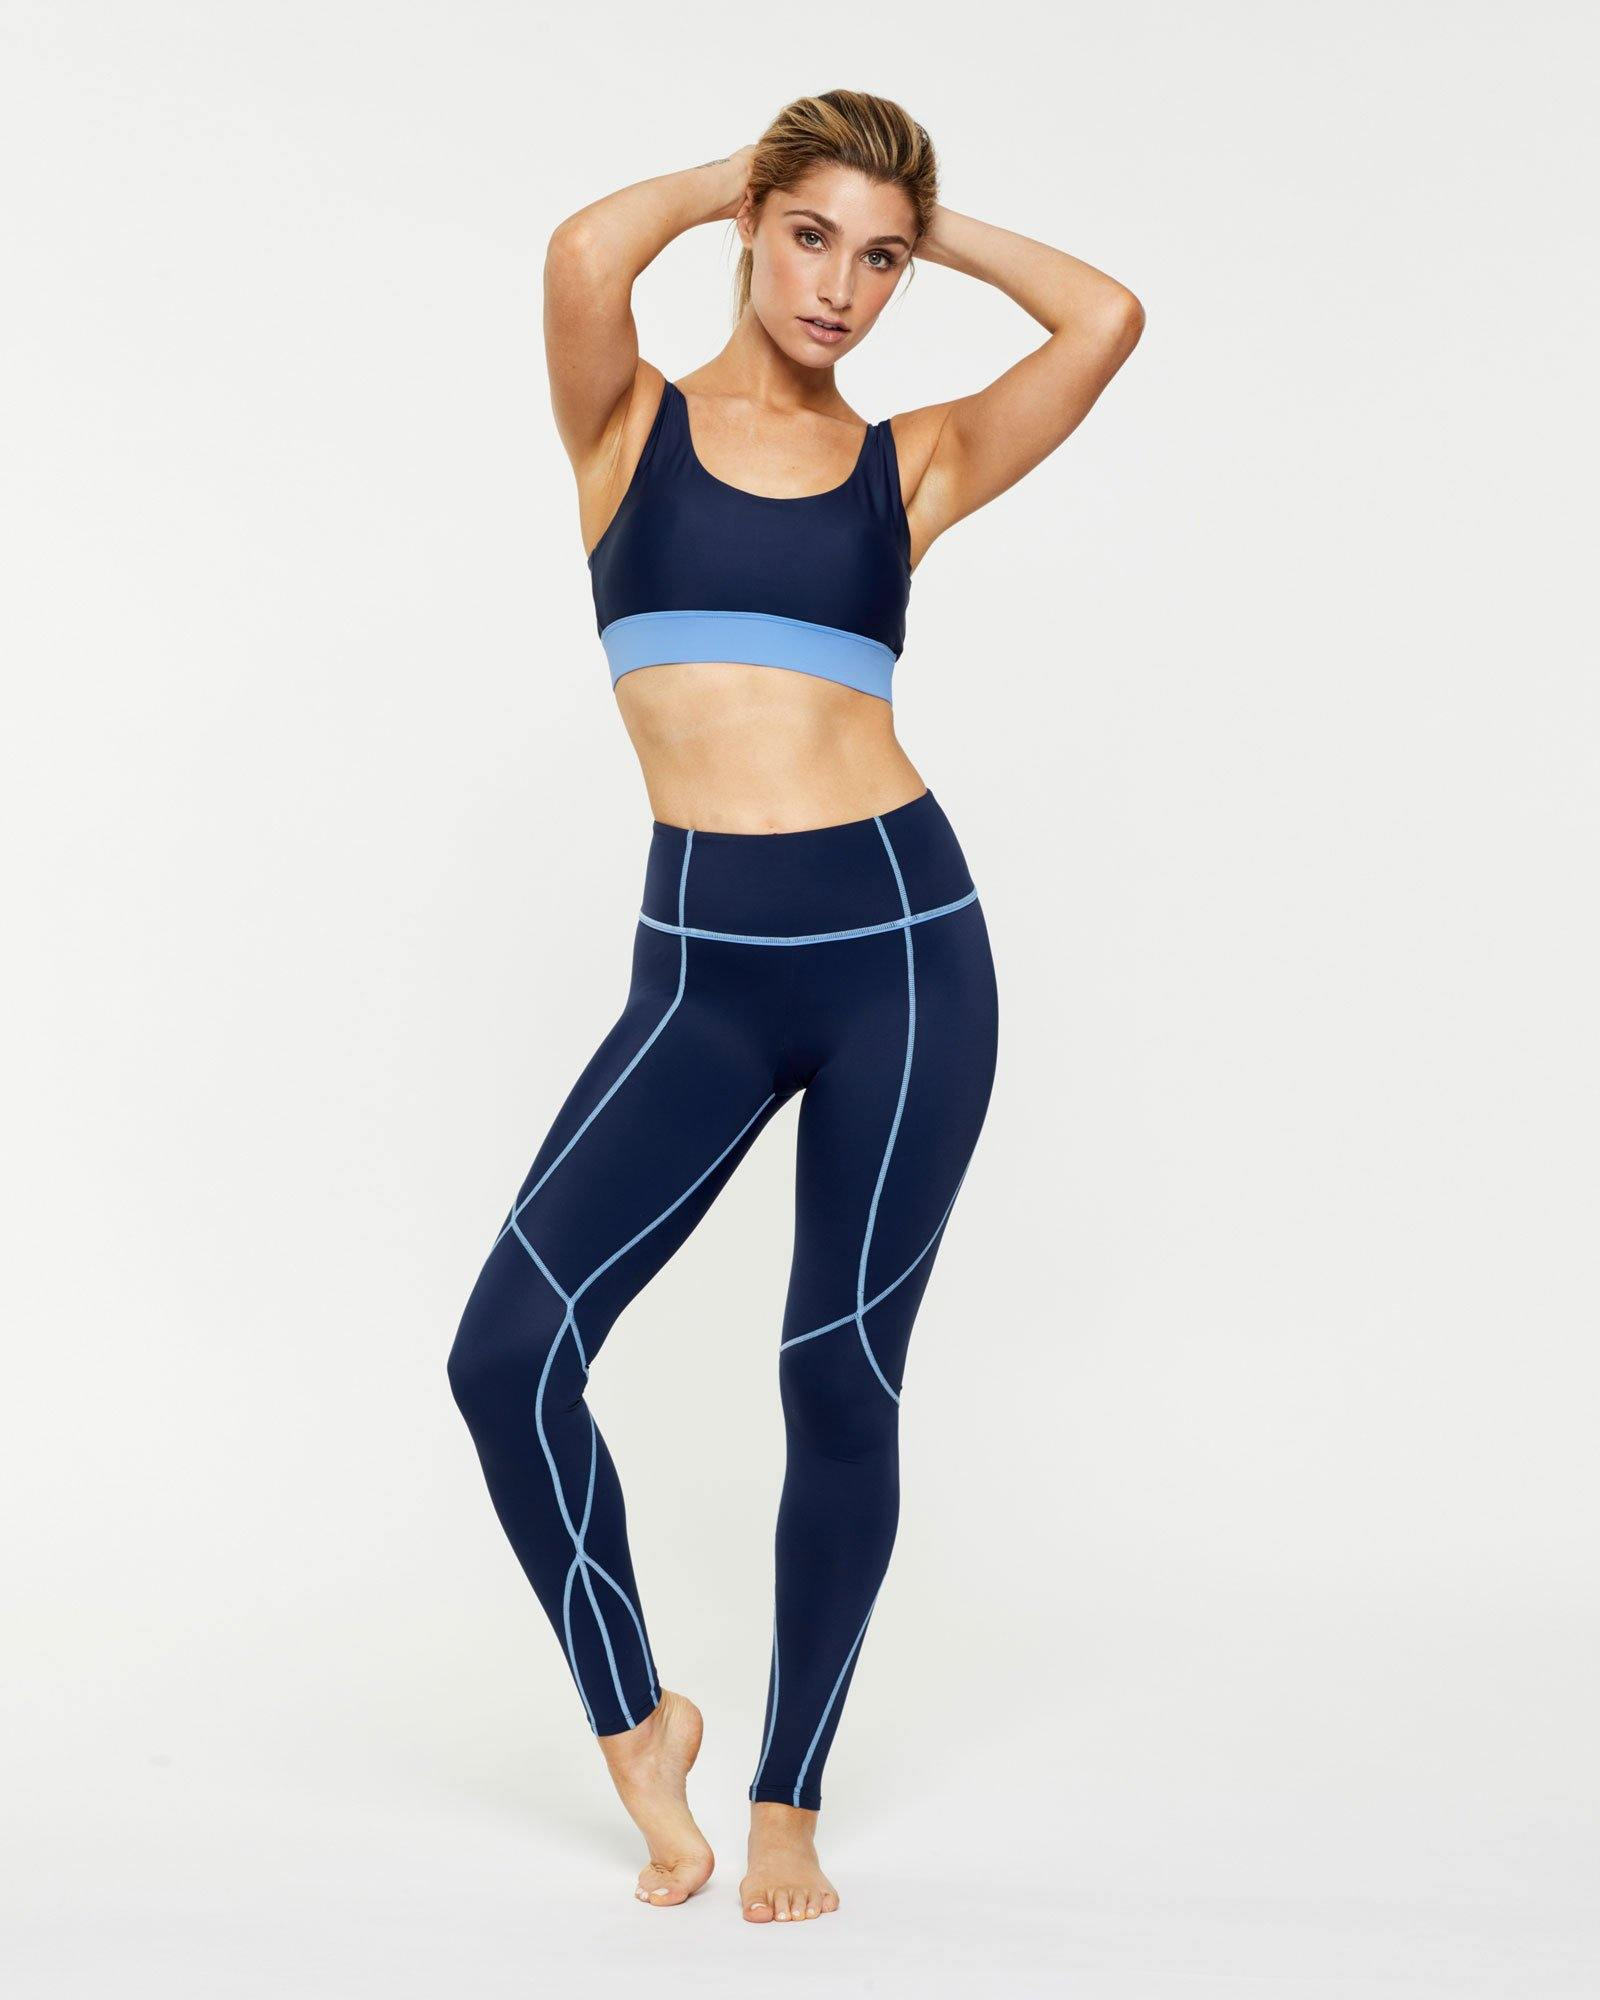 Femininely Vastus mid waist long Navy legging with contrast stitching, front view worn with Pectoralis active bra top, for pilates, barre, yoga, gym and studio workouts